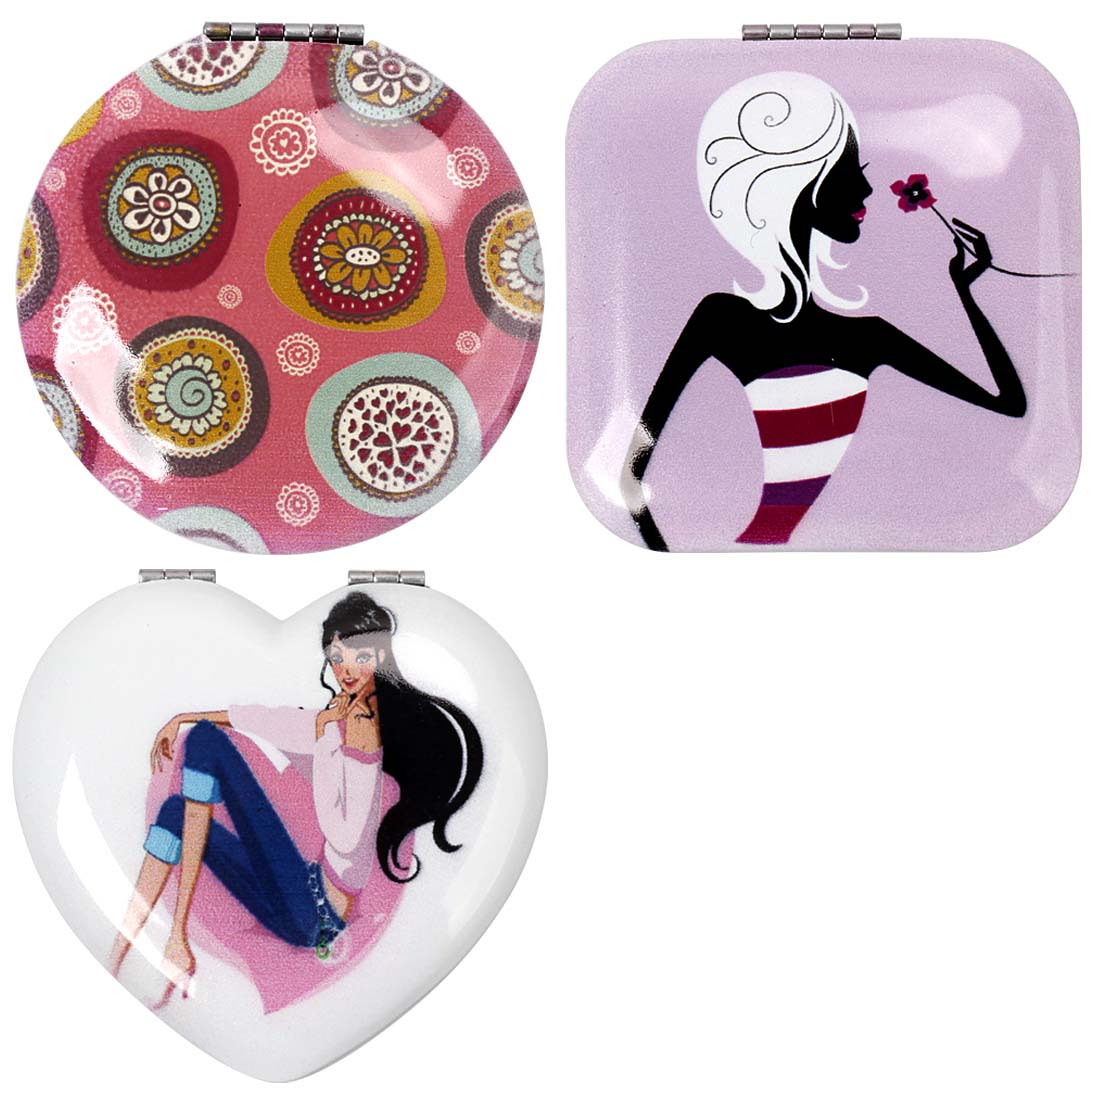 BMC Womens 3 pc Mixed Design Alloy Metal Folding Compact Beauty Makeup Mirrors